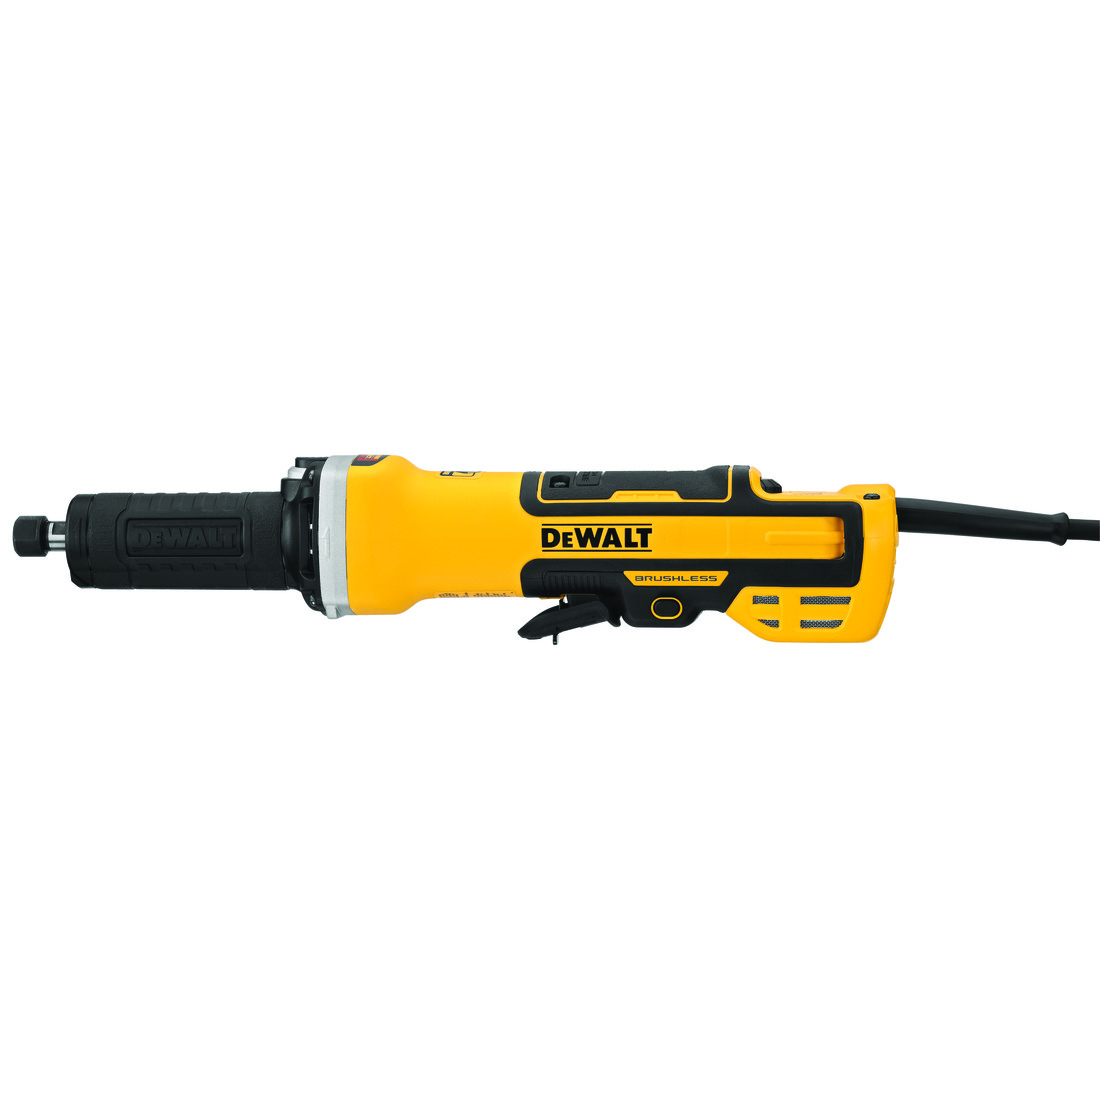 DeWALT® DWE4997VS Brushless Corded Die Grinder With Lock-On Switch, 2 in Dia Wheel, 7500 to 25000 rpm Speed, 120 VAC, Paddle Switch